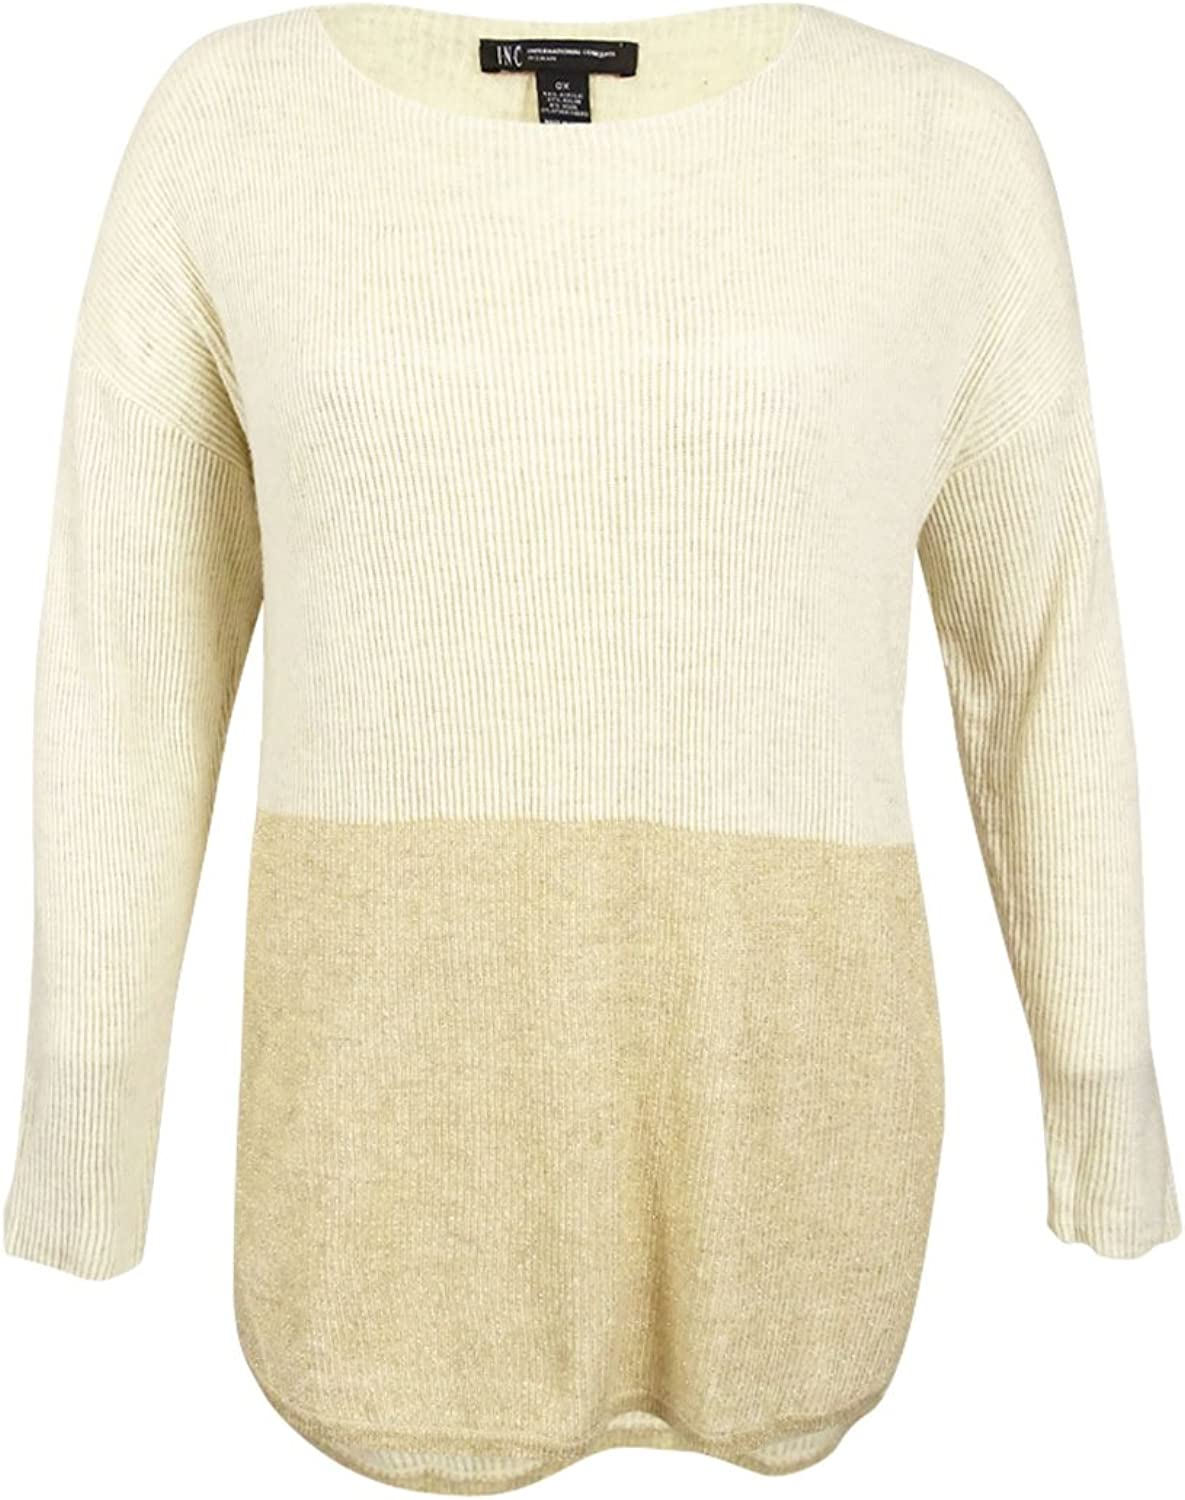 INC Womens Plus Two Tone HighLow Crewneck Sweater Beige 0X